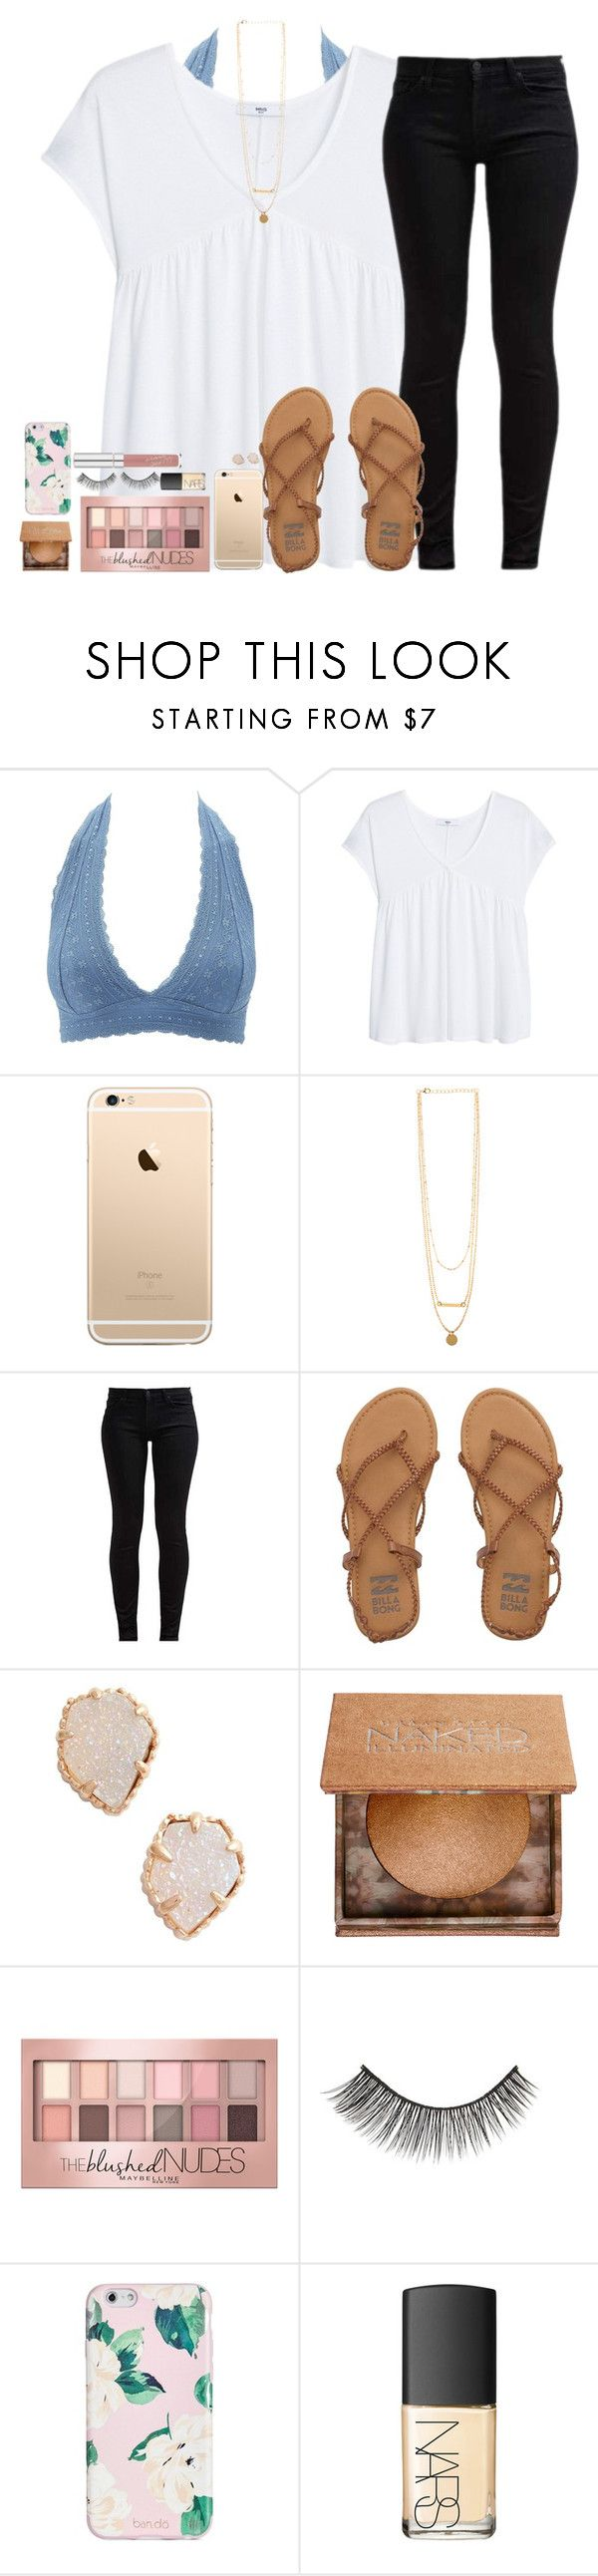 """""""I have died everyday waiting for you ⭐️"""" by southernstruttin ❤ liked on Polyvore featuring Charlotte Russe, MANGO, 7 For All Mankind, Billabong, Kendra Scott, Urban Decay, Maybelline, Forever 21, ban.do and NARS Cosmetics"""